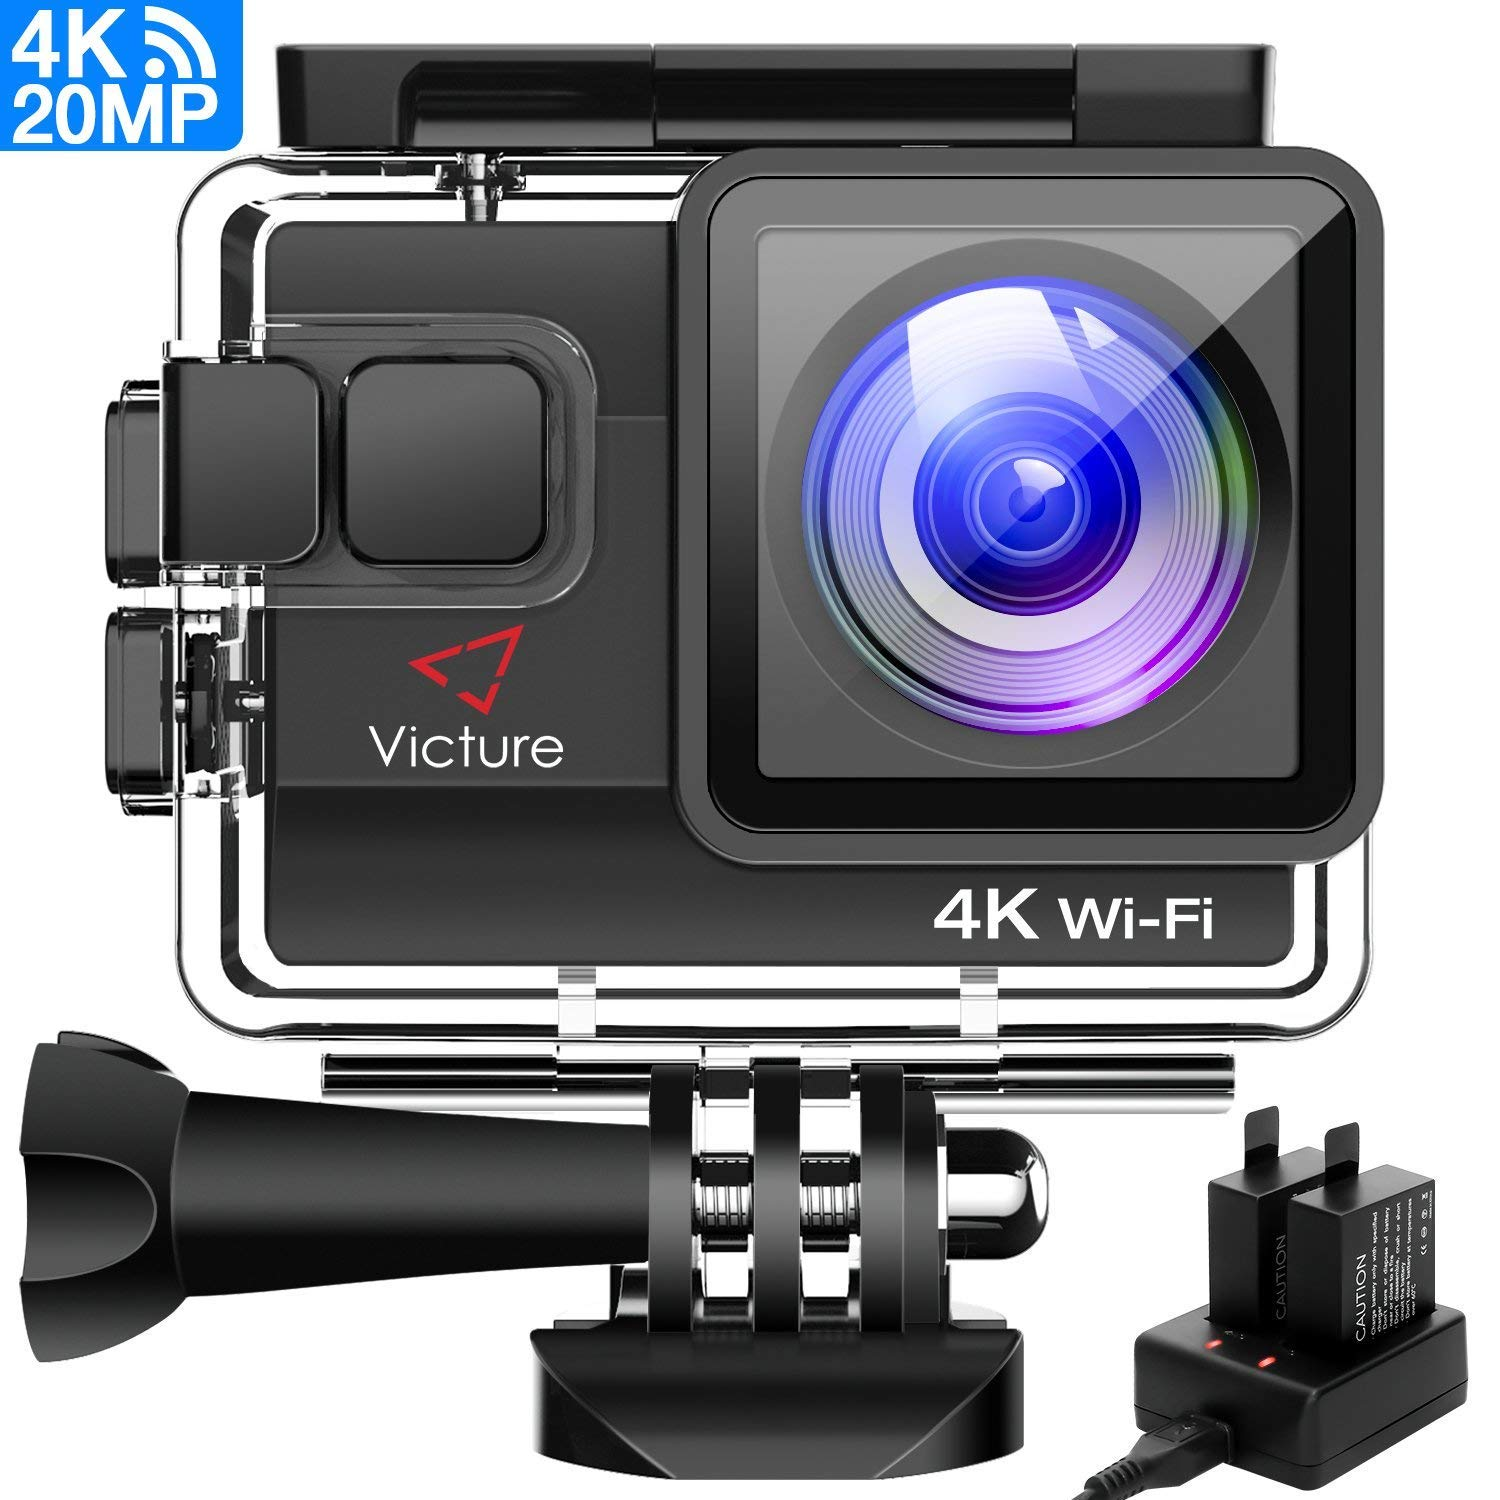 Victure 4K Action Camera 20MP WiFi Underwater Camera Diving 40 Meter Waterproof Sport Cam with 2 Rechargeable Batteries and Multiple Accessories for Biking Snorkeling Surfing by Victure